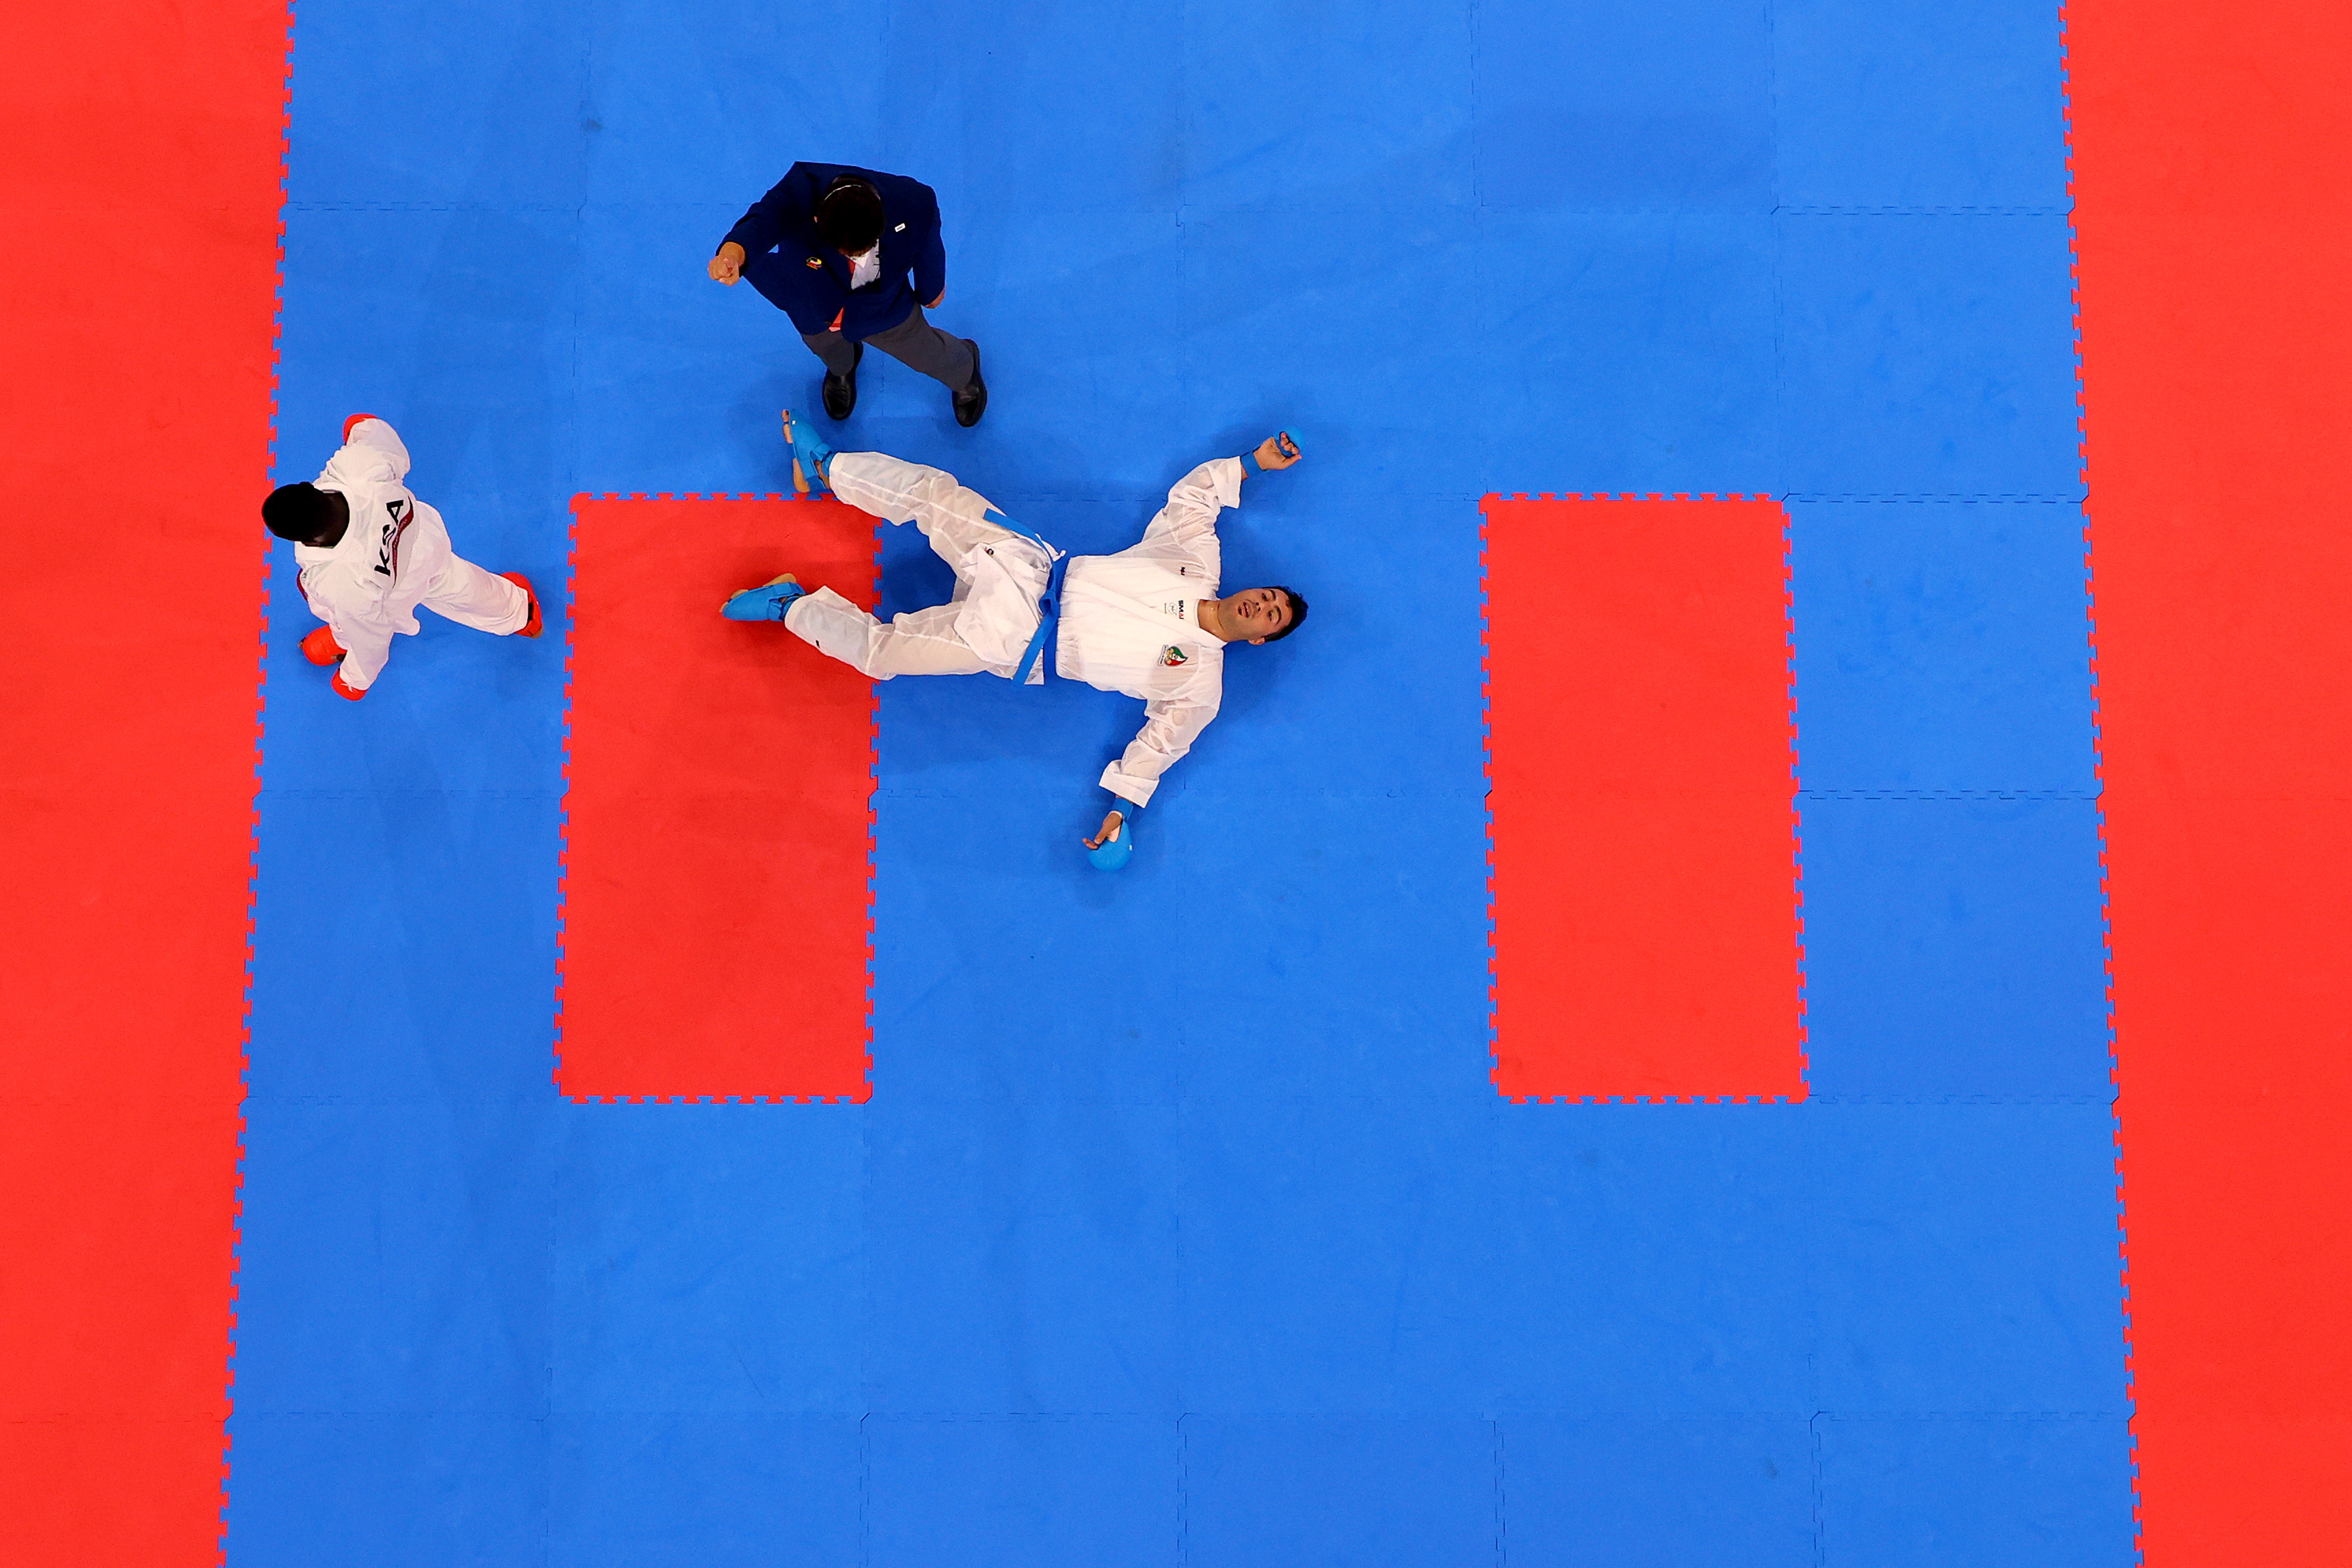 Sajad Ganjzadeh (R) of Team Iran lays on the tatami after being struck by Tareg Hamedi of Team Saudi Arabia during the Men's Karate Kumite +75kg Gold Medal Bout on day fifteen of the Tokyo 2020 Olympic Games at Nippon Budokan on August 07, 2021 in Tokyo, Japan.